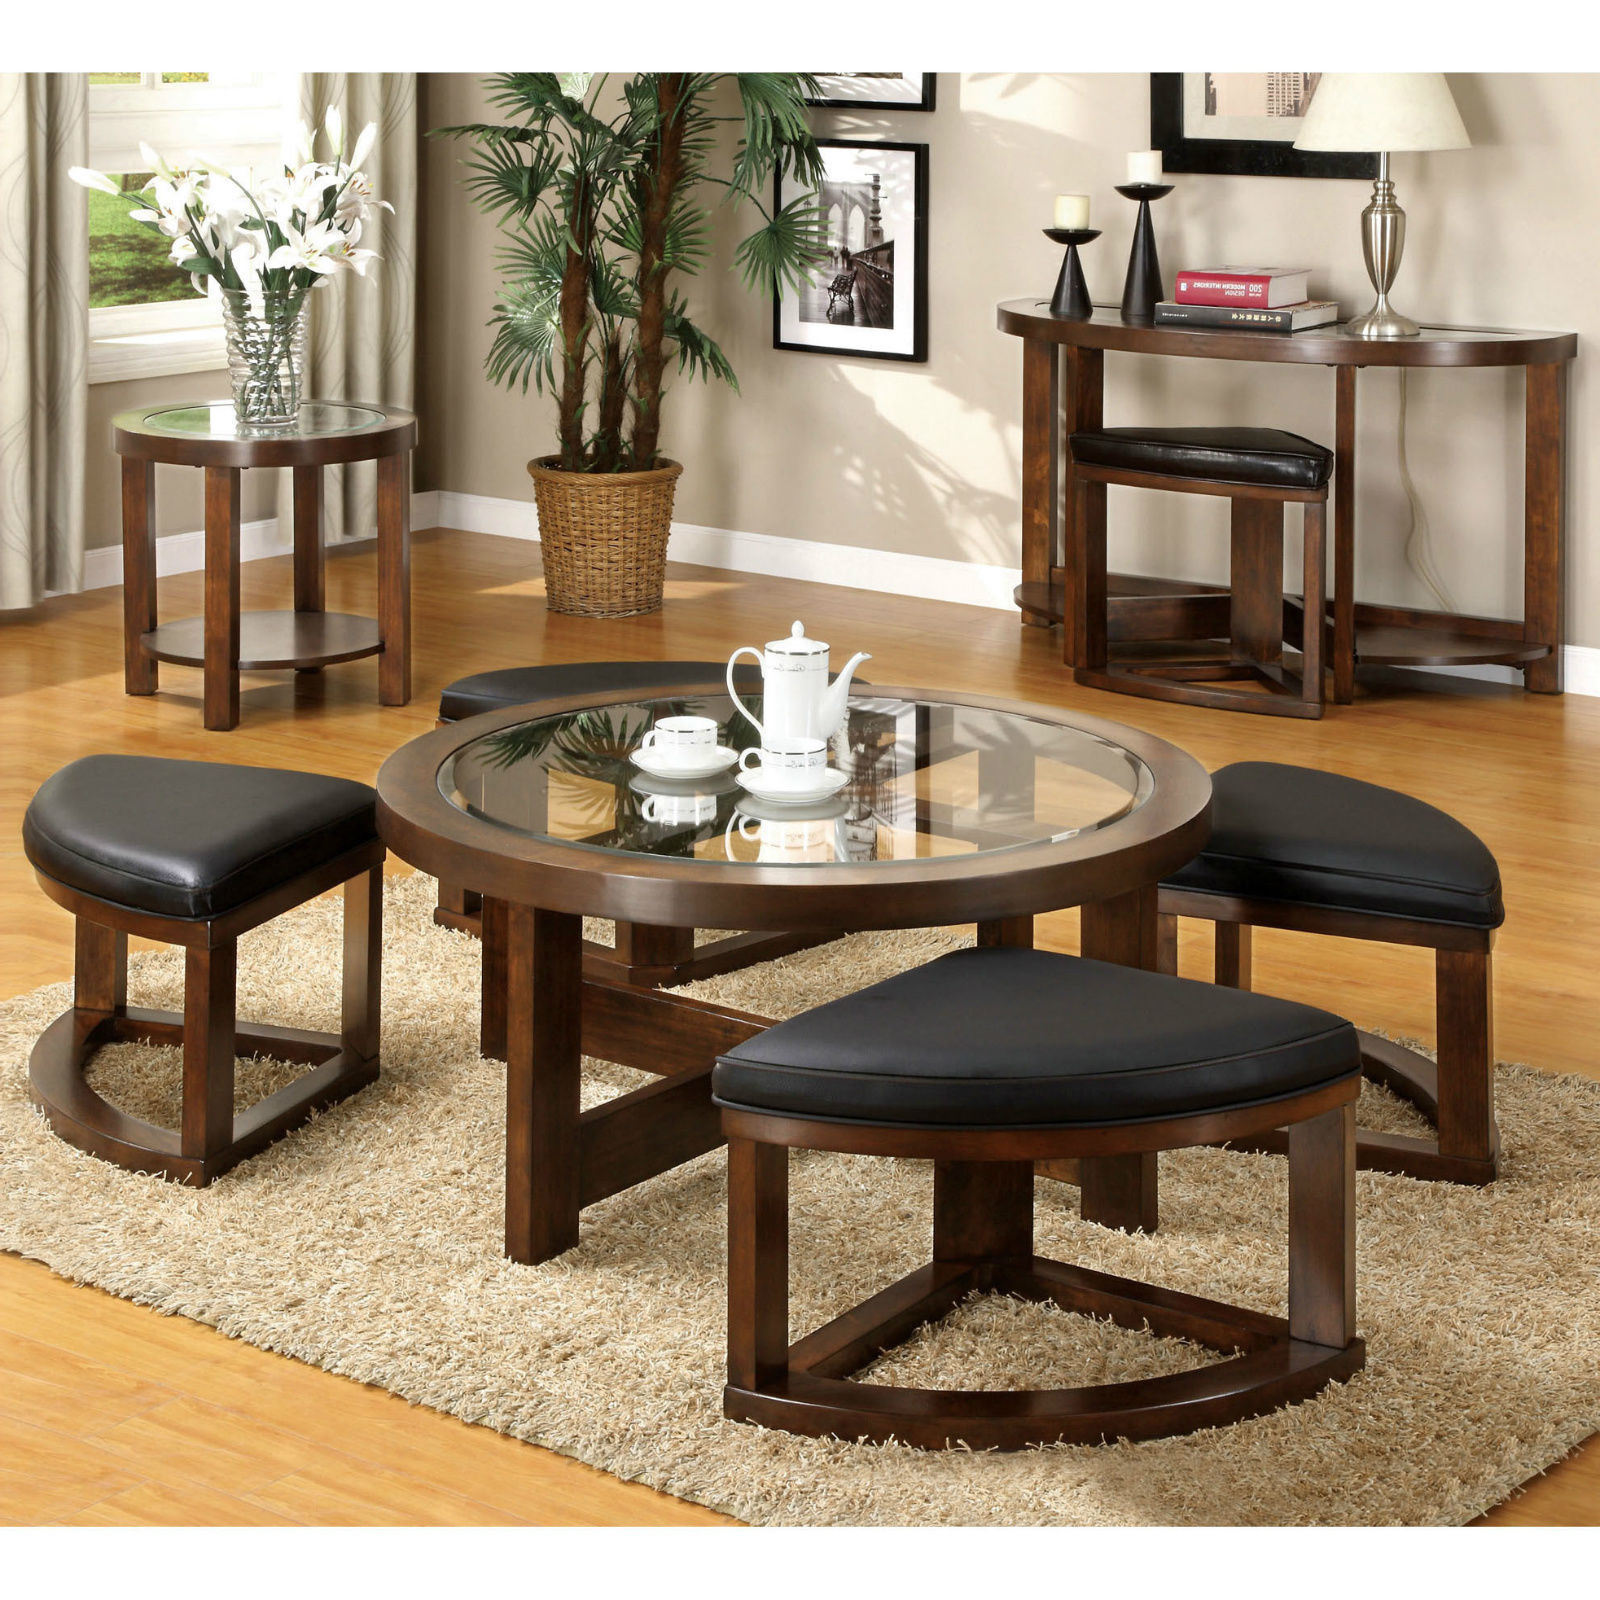 Coffee Table Round Wood Glass Top Wedge Stools 5 Piece Dinette Seating For 4 New Tables